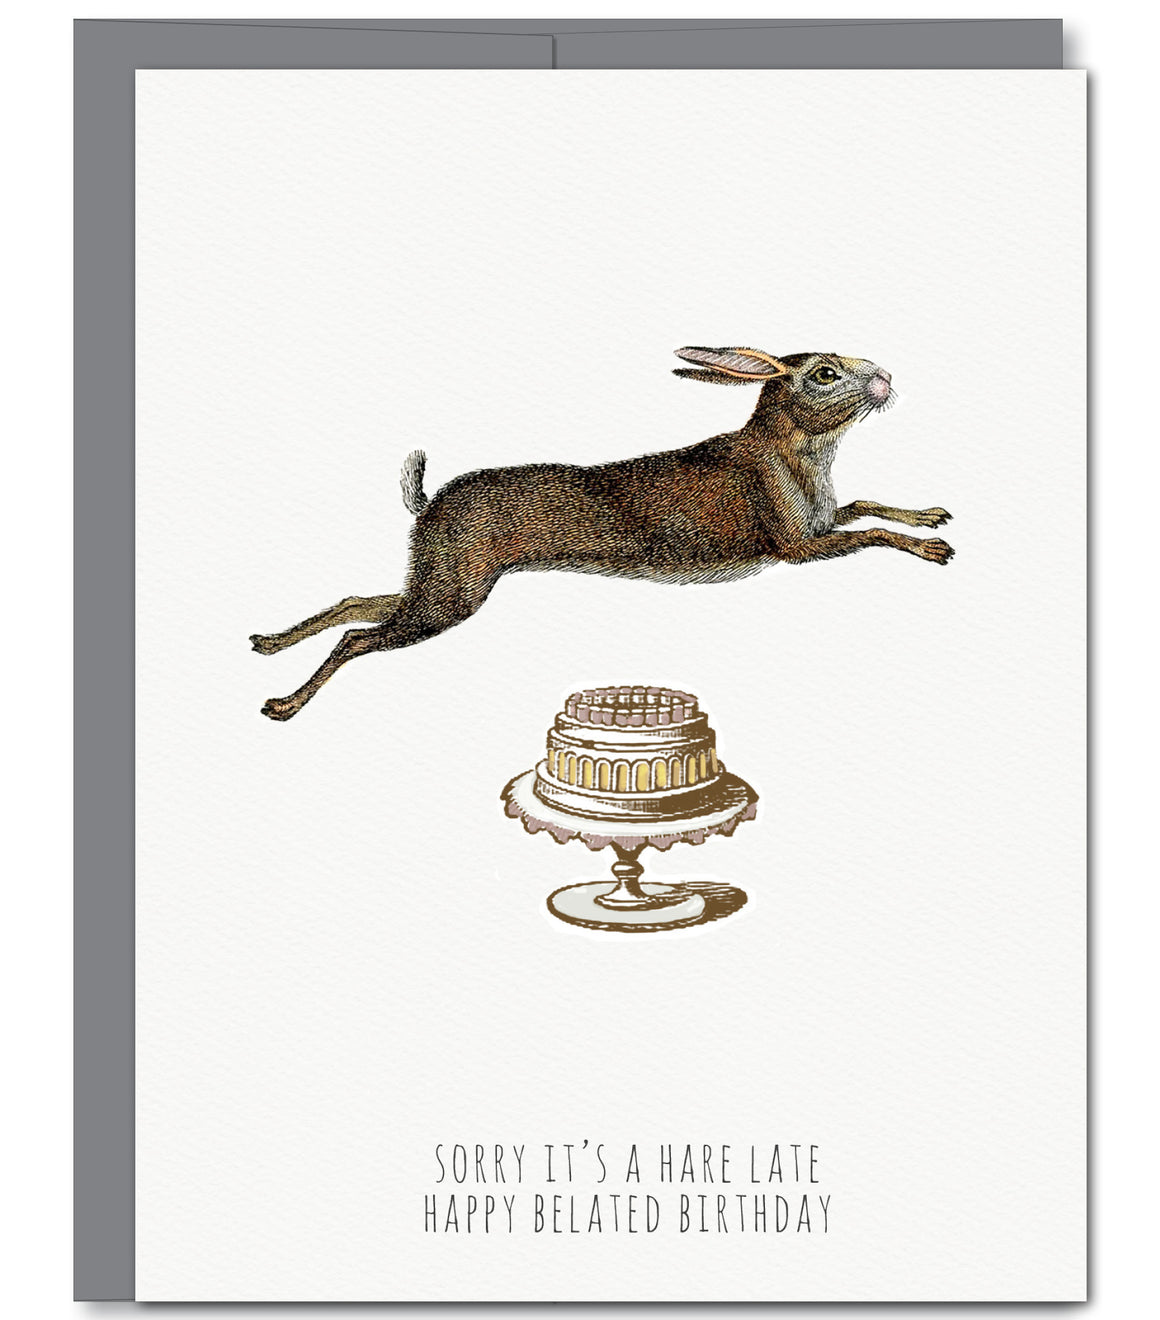 Hare Belated Birthday Glitter Greeting Card | Sylvan Gate Design